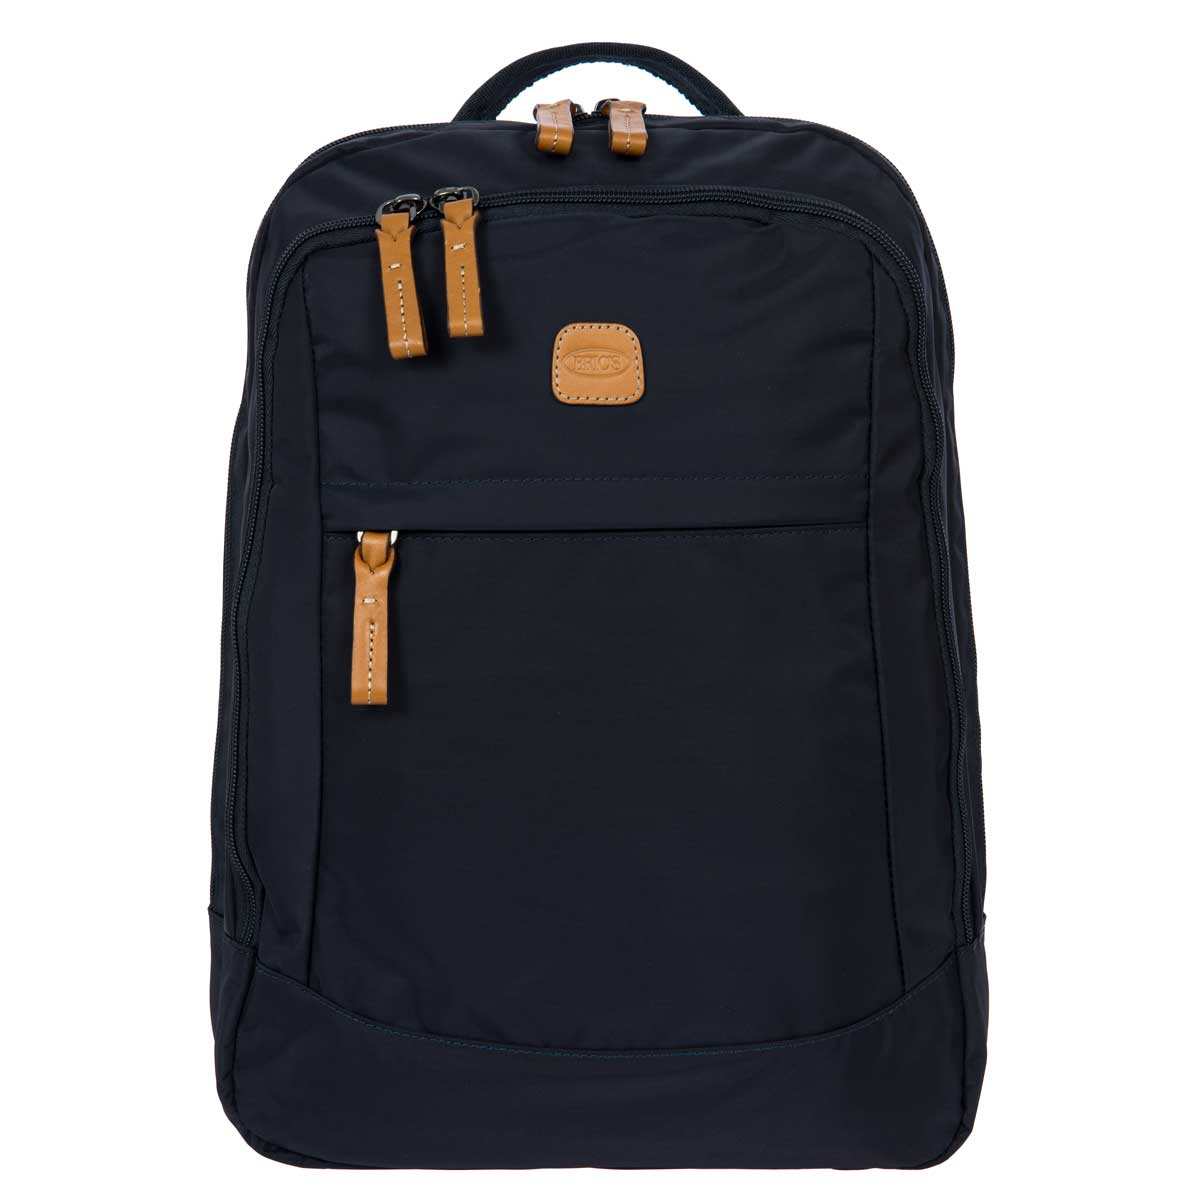 X-Travel Metro Backpack by Brics (Color: Navy)